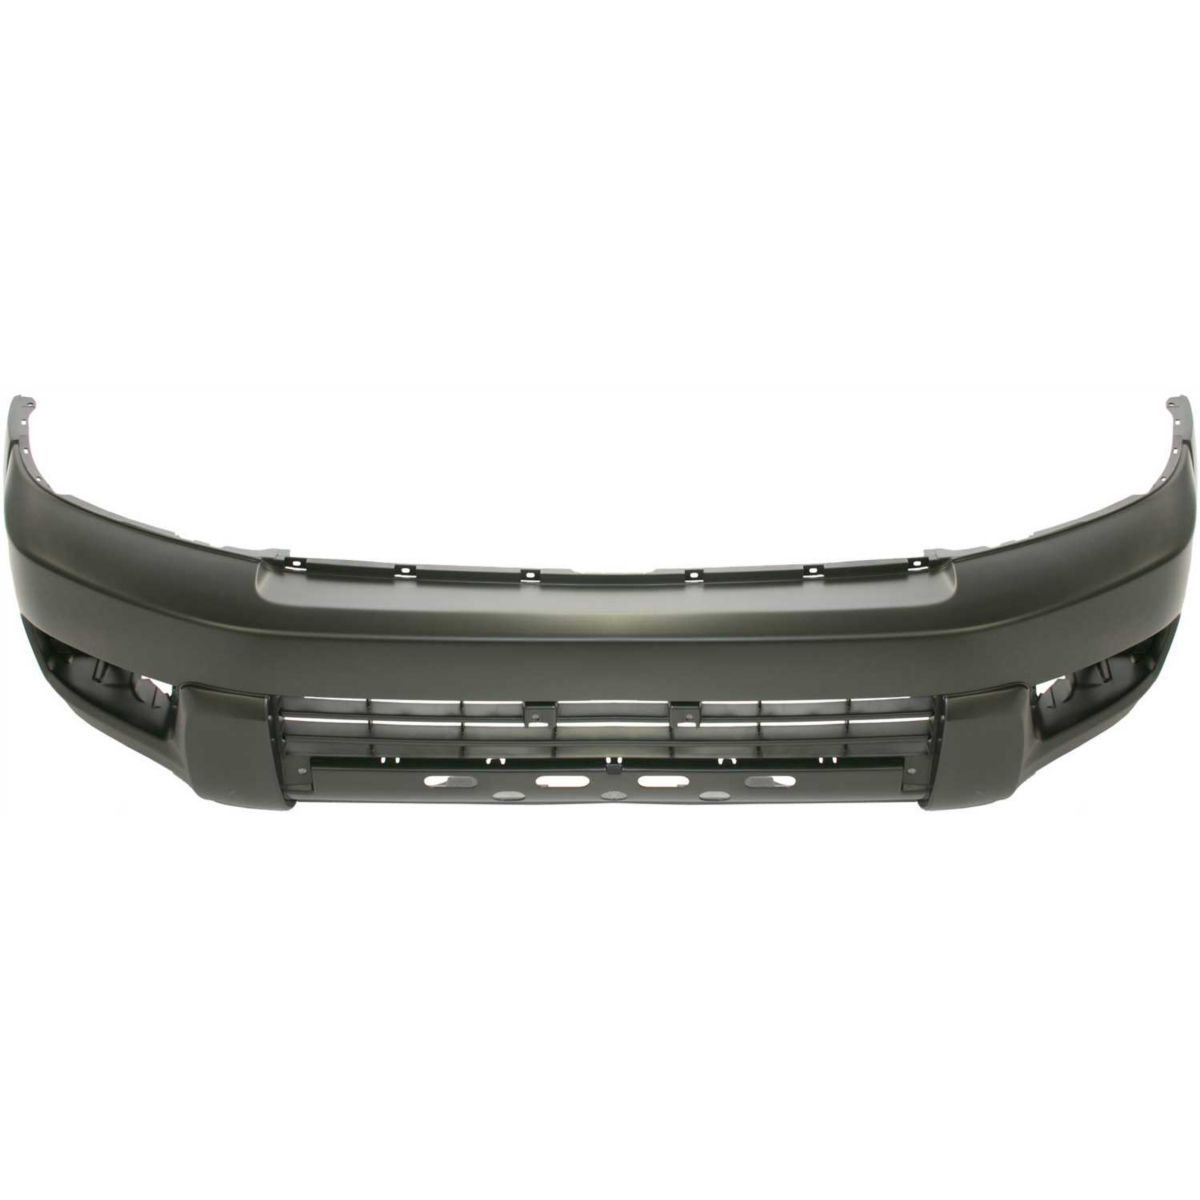 2003-2005 TOYOTA 4RUNNER Front Bumper Cover Limited Painted to Match